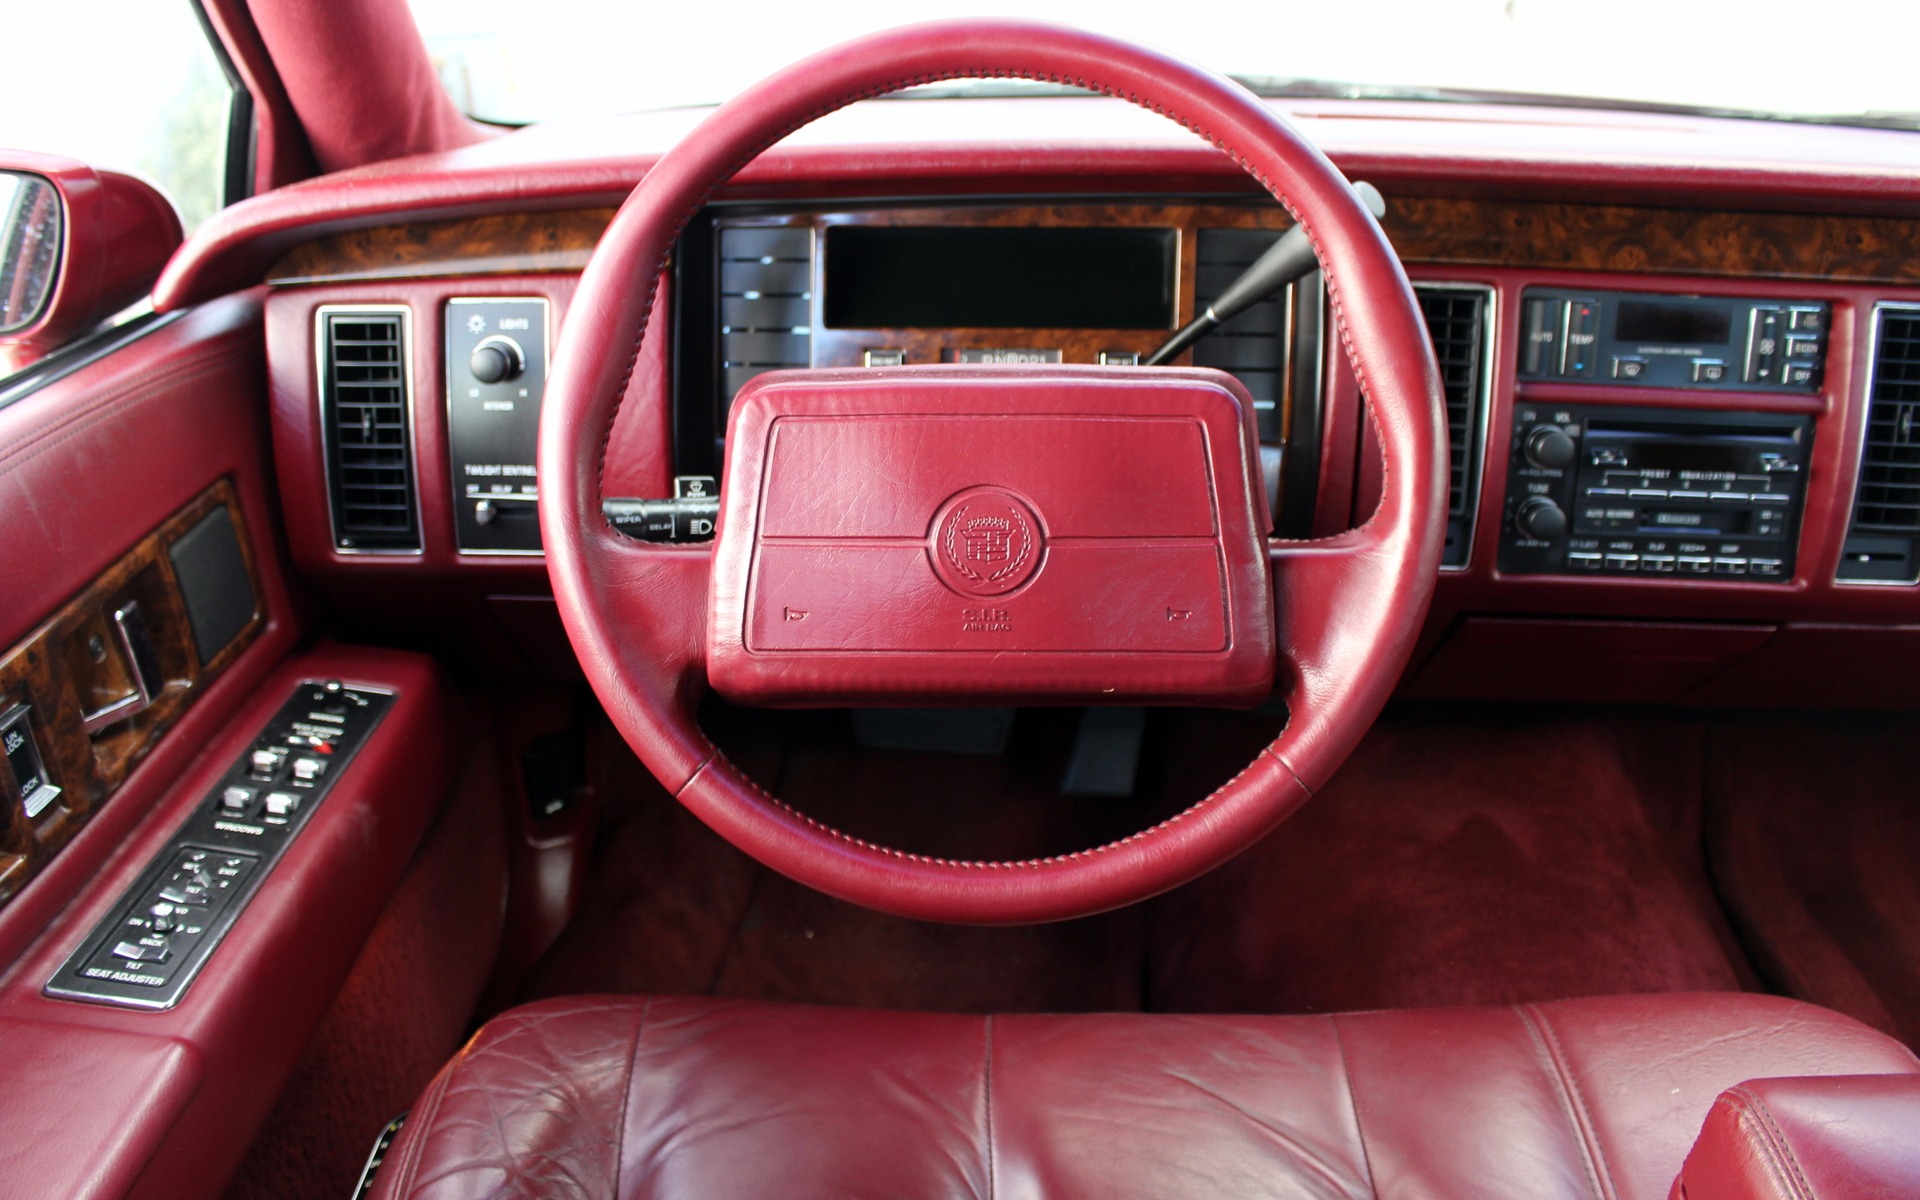 1993 Cadillac Fleetwood Brougham Stock # CA425 for sale ...